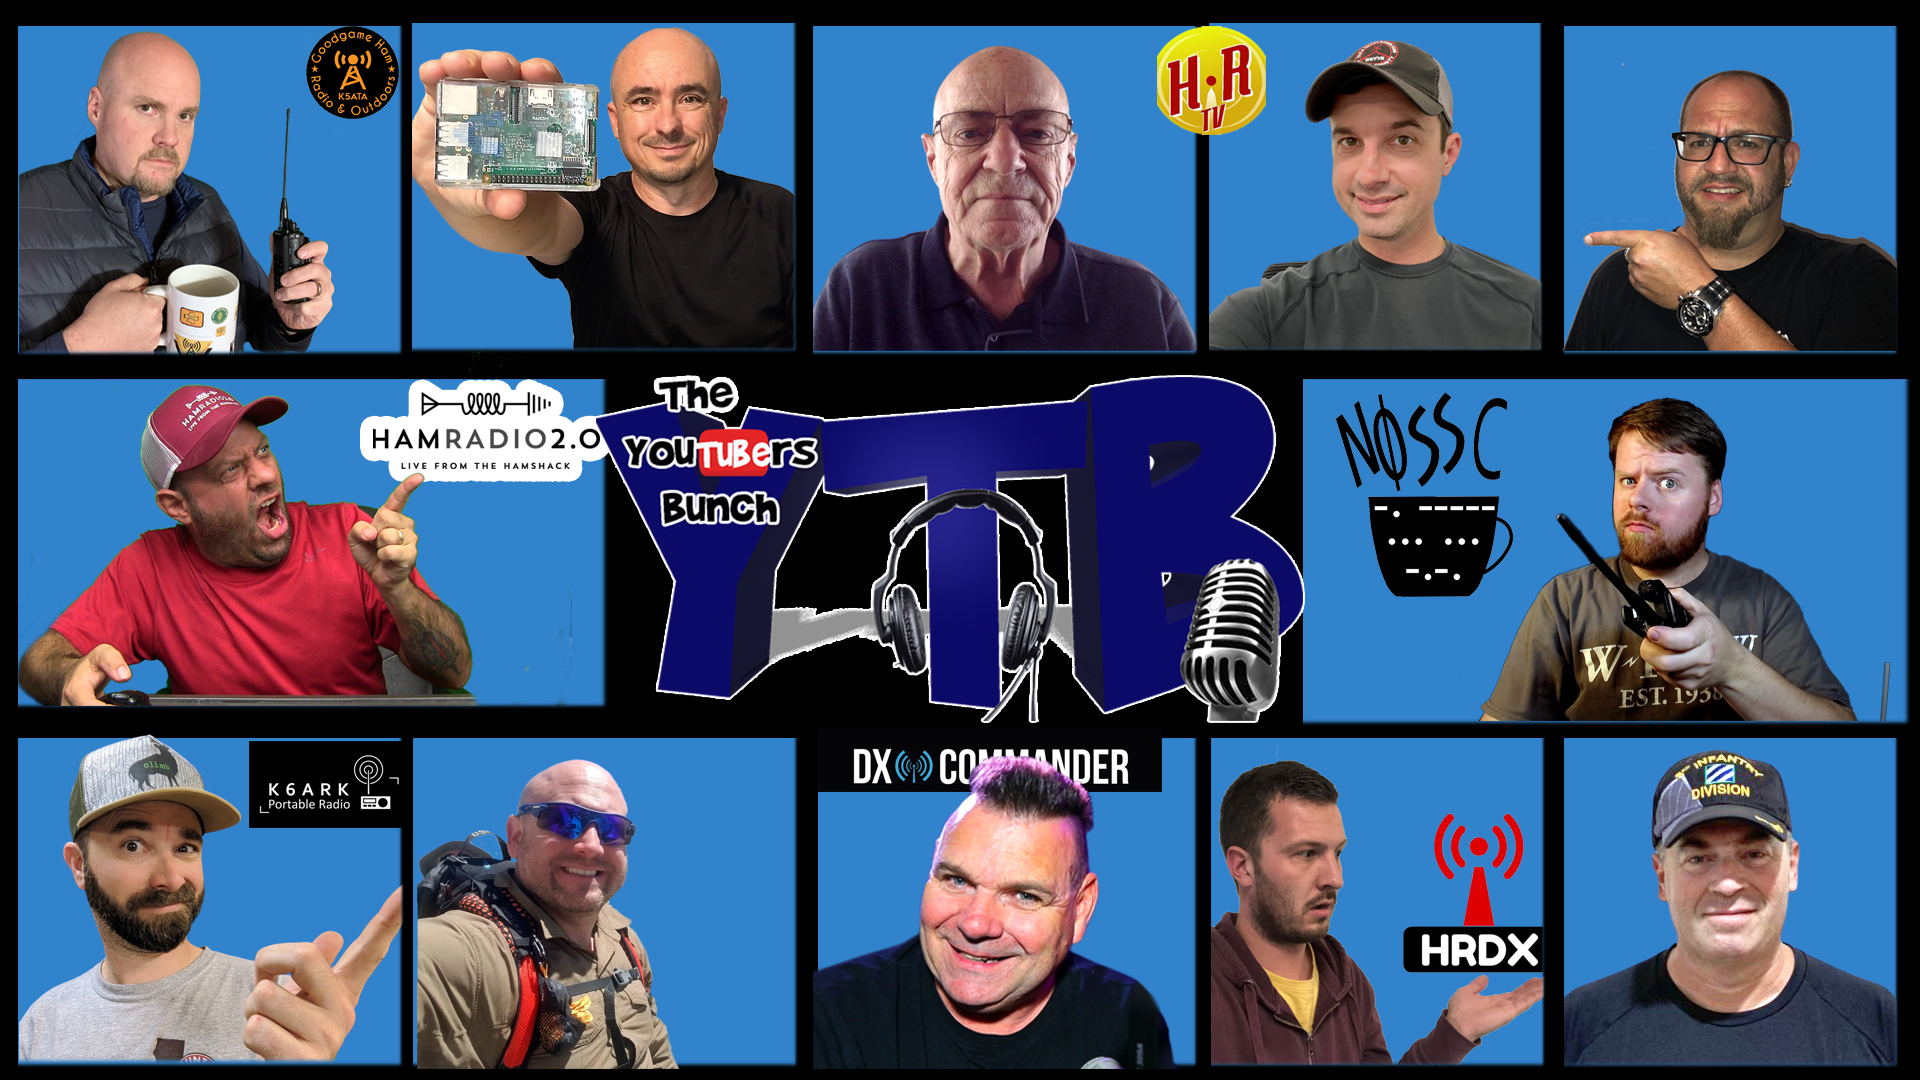 Episode 451: FCC Proposes to Reinstate Amateur Radio Service Fees | YouTubers Bunch #20